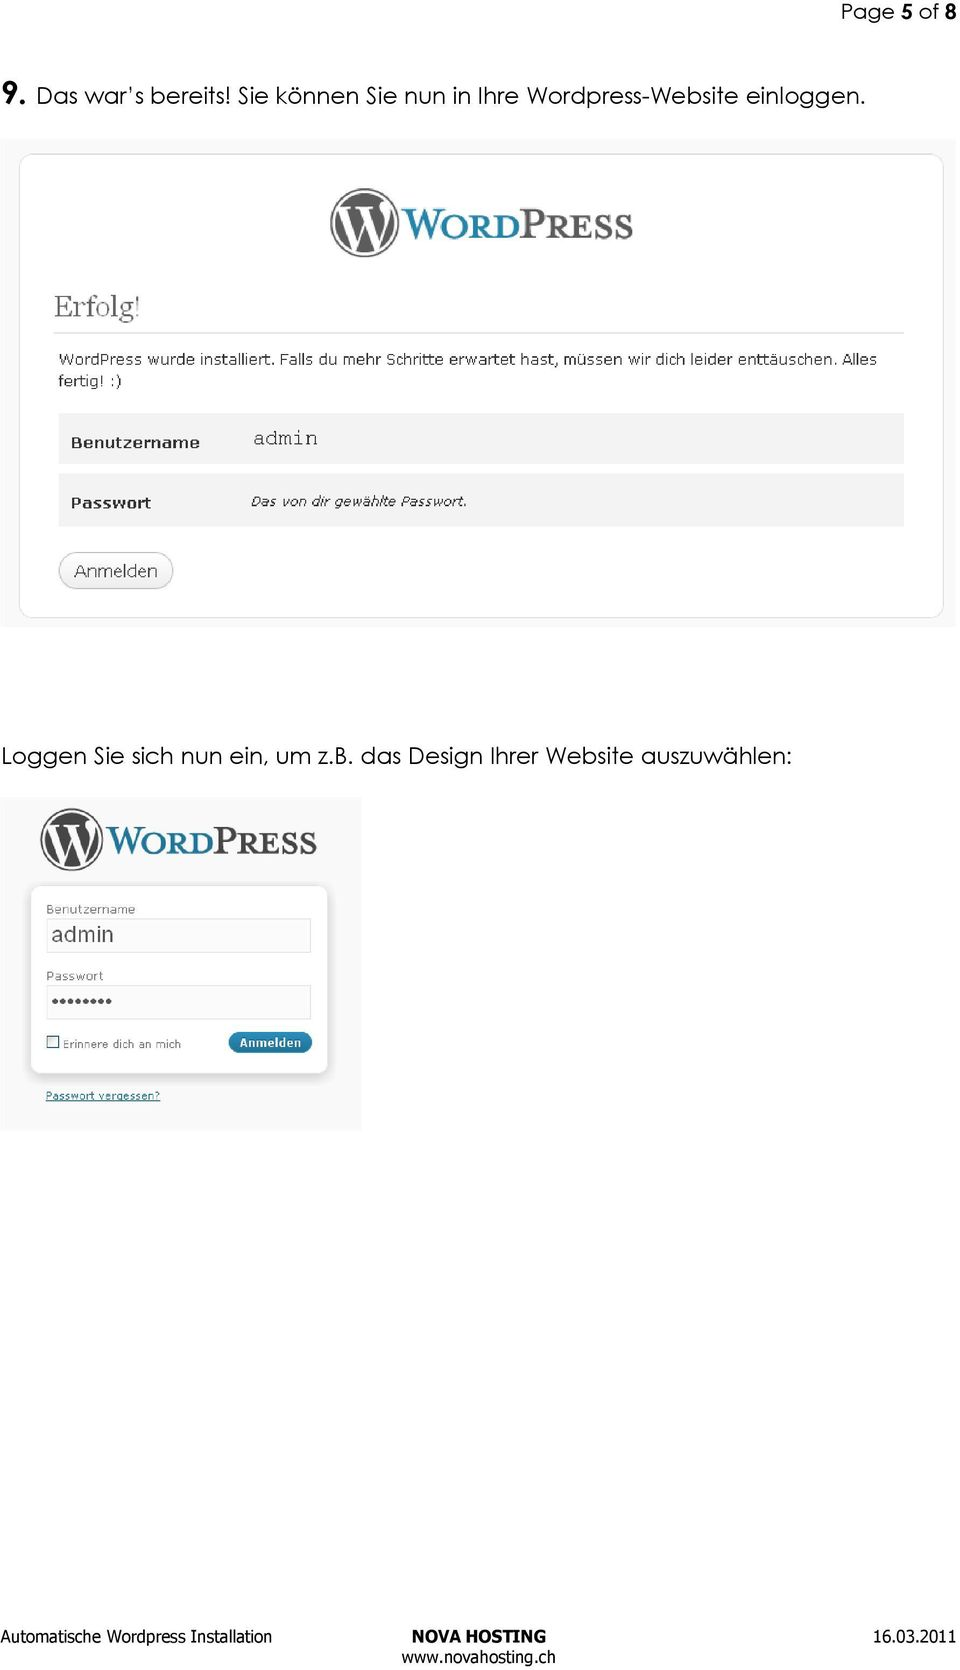 Wordpress-Website einloggen.